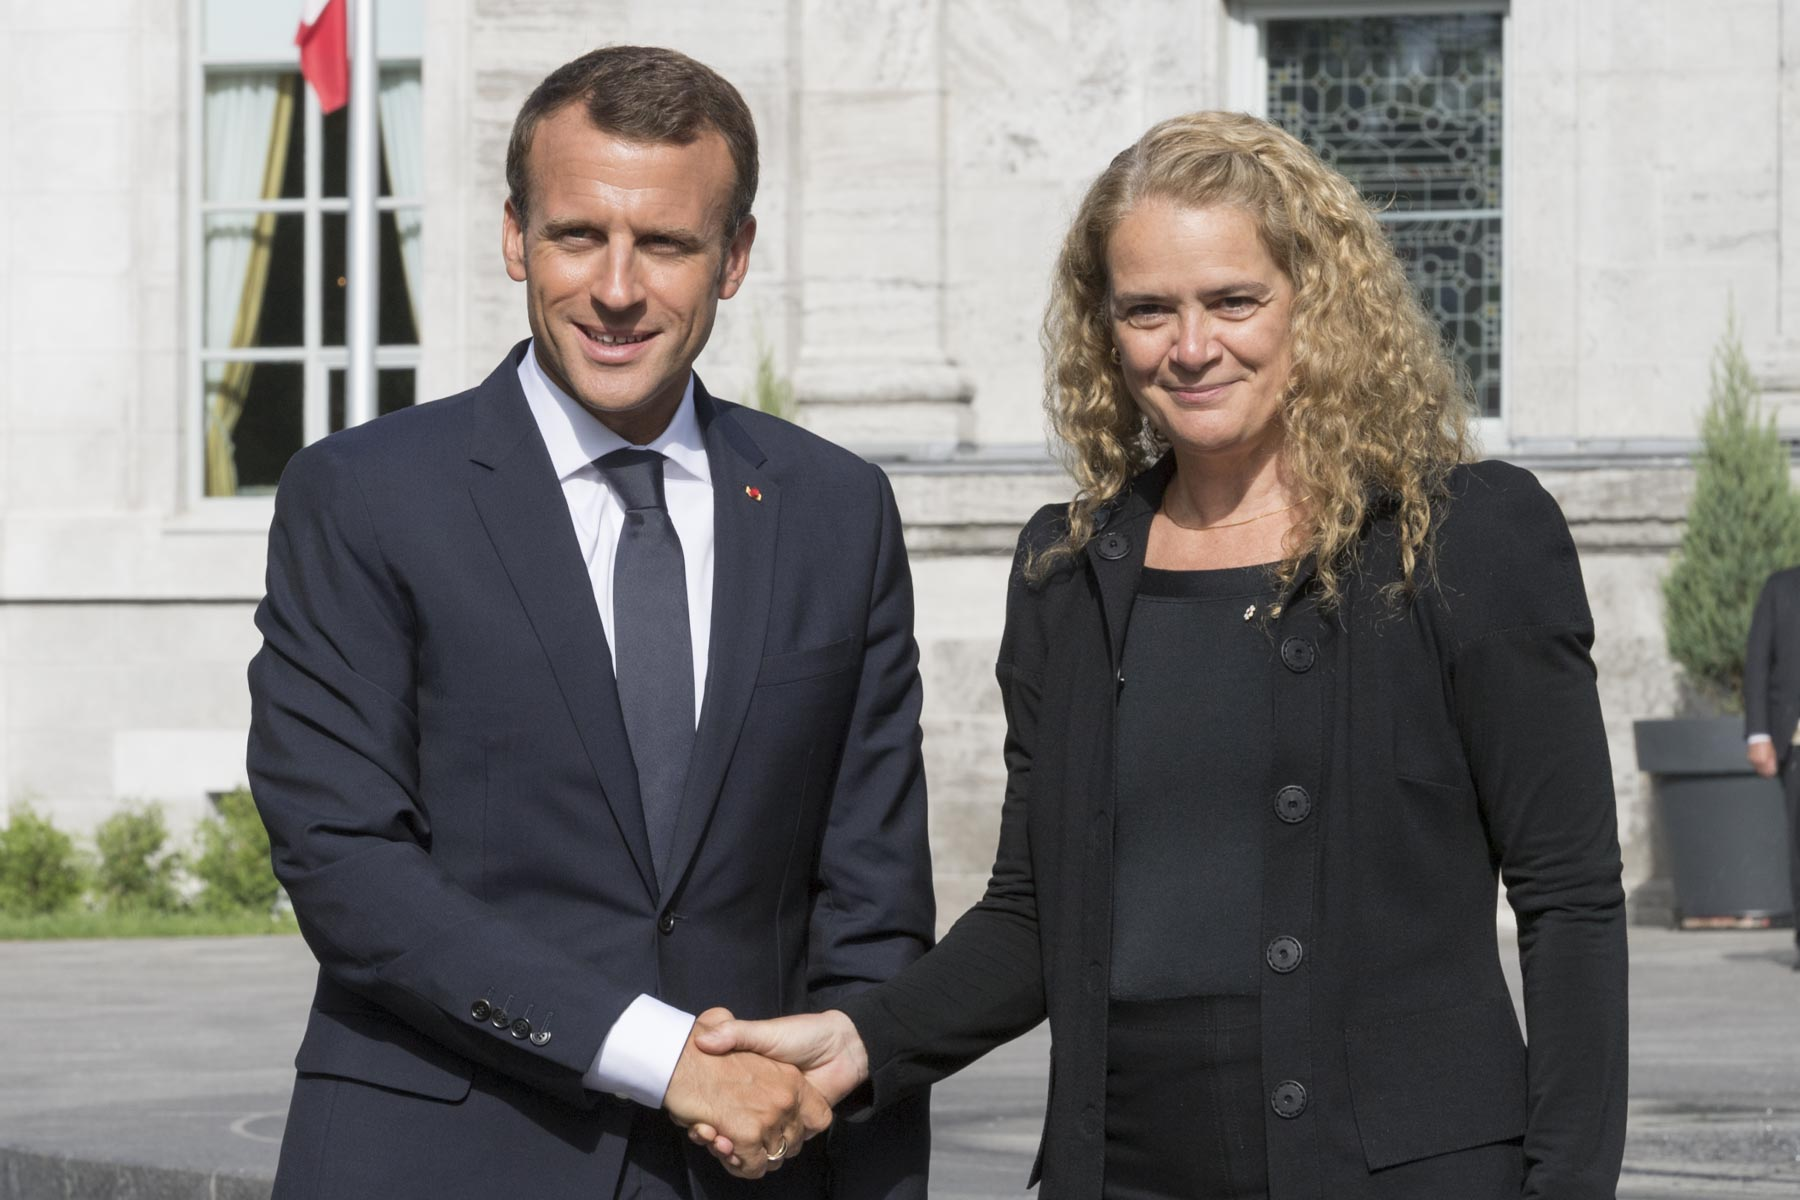 The Governor General welcomed His Excellency Emmanuel Macron, President of the French Republic, at Rideau Hall on June 6, 2018.